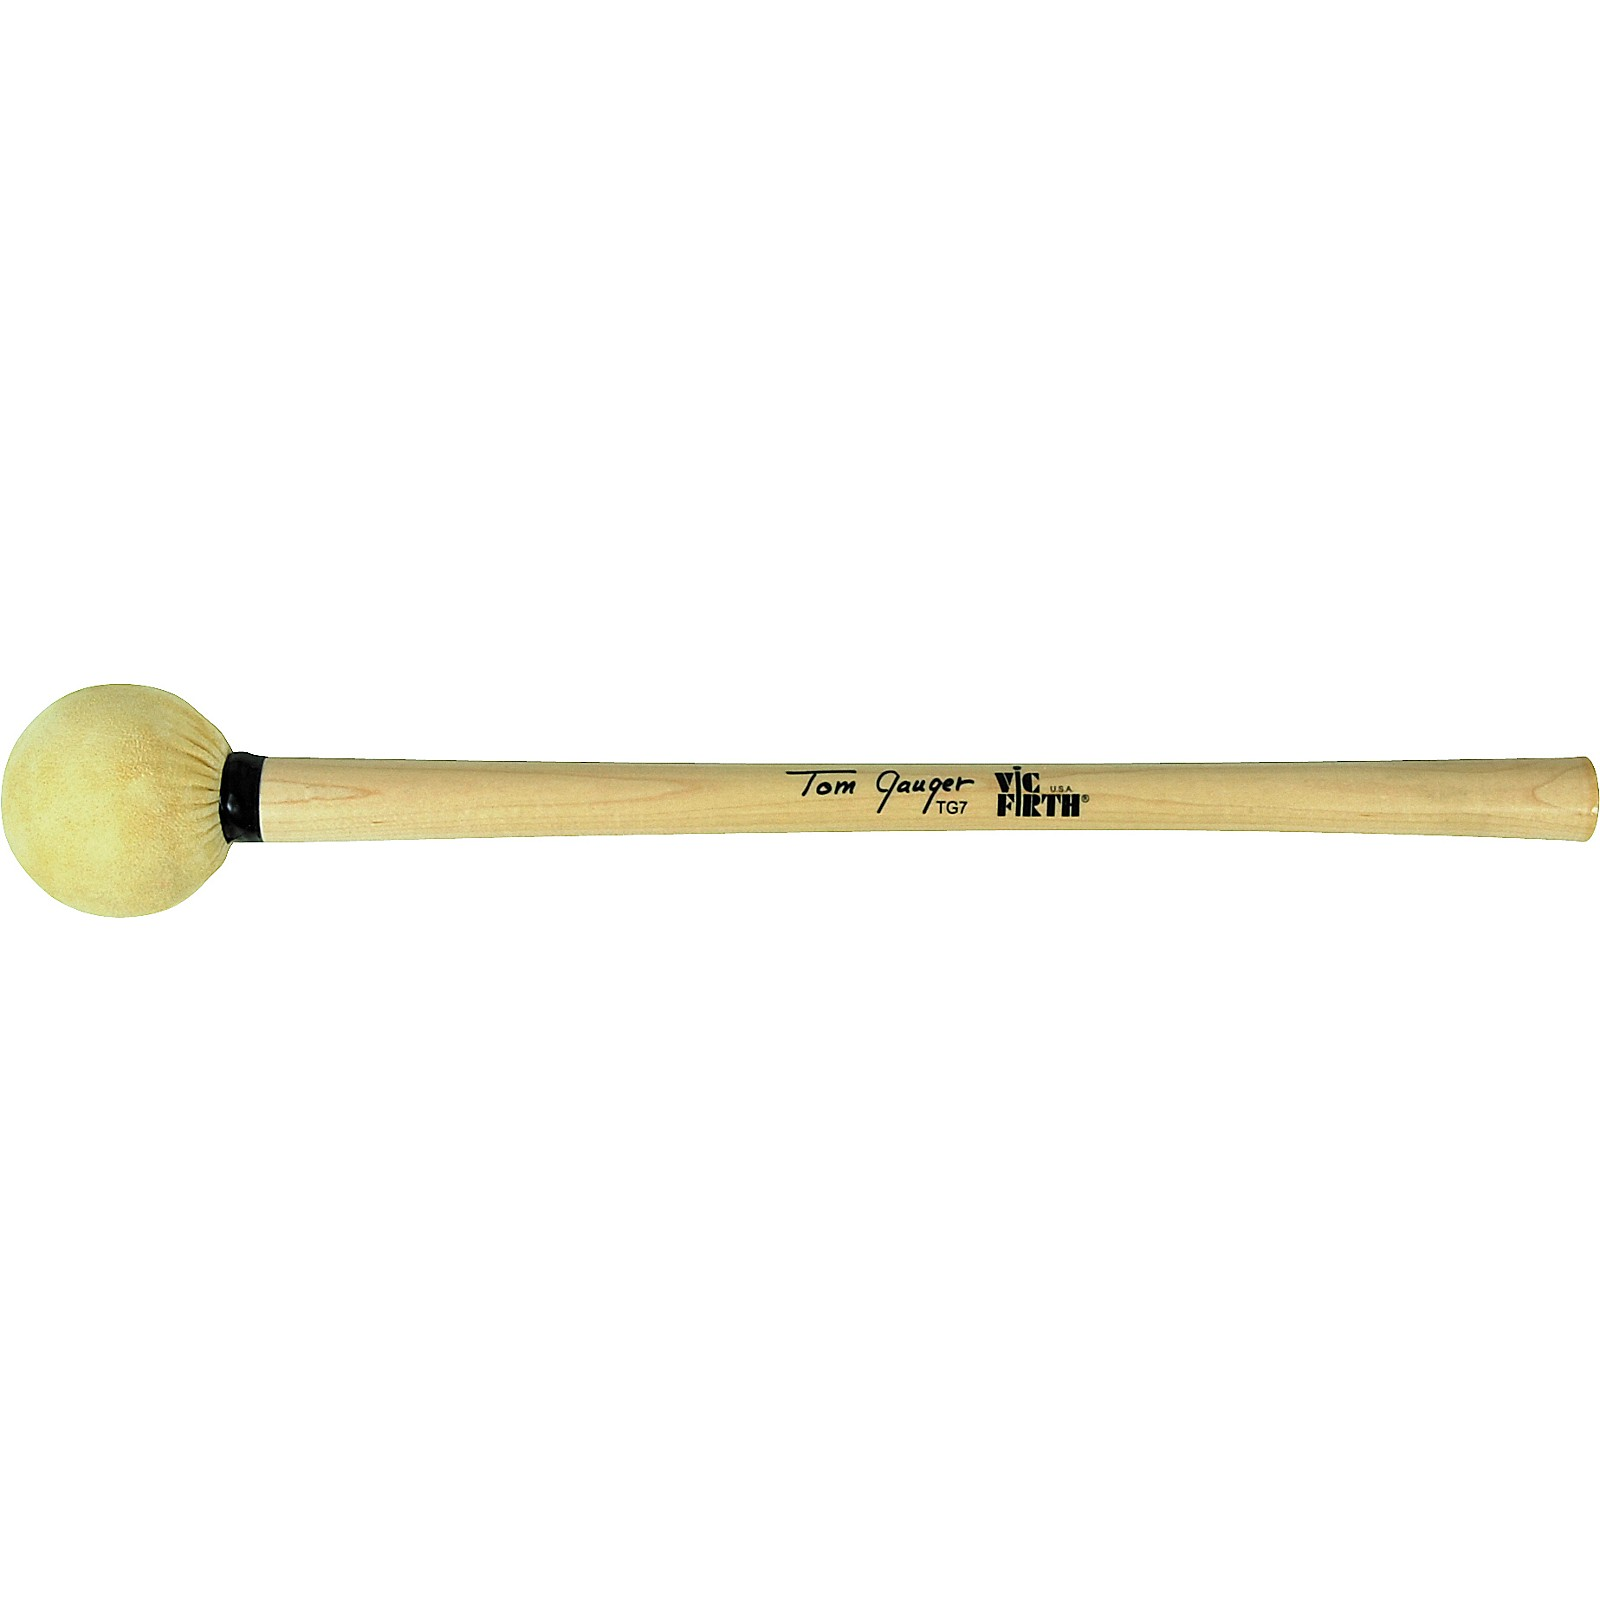 Vic Firth TG01 General Bass Drum Mallets